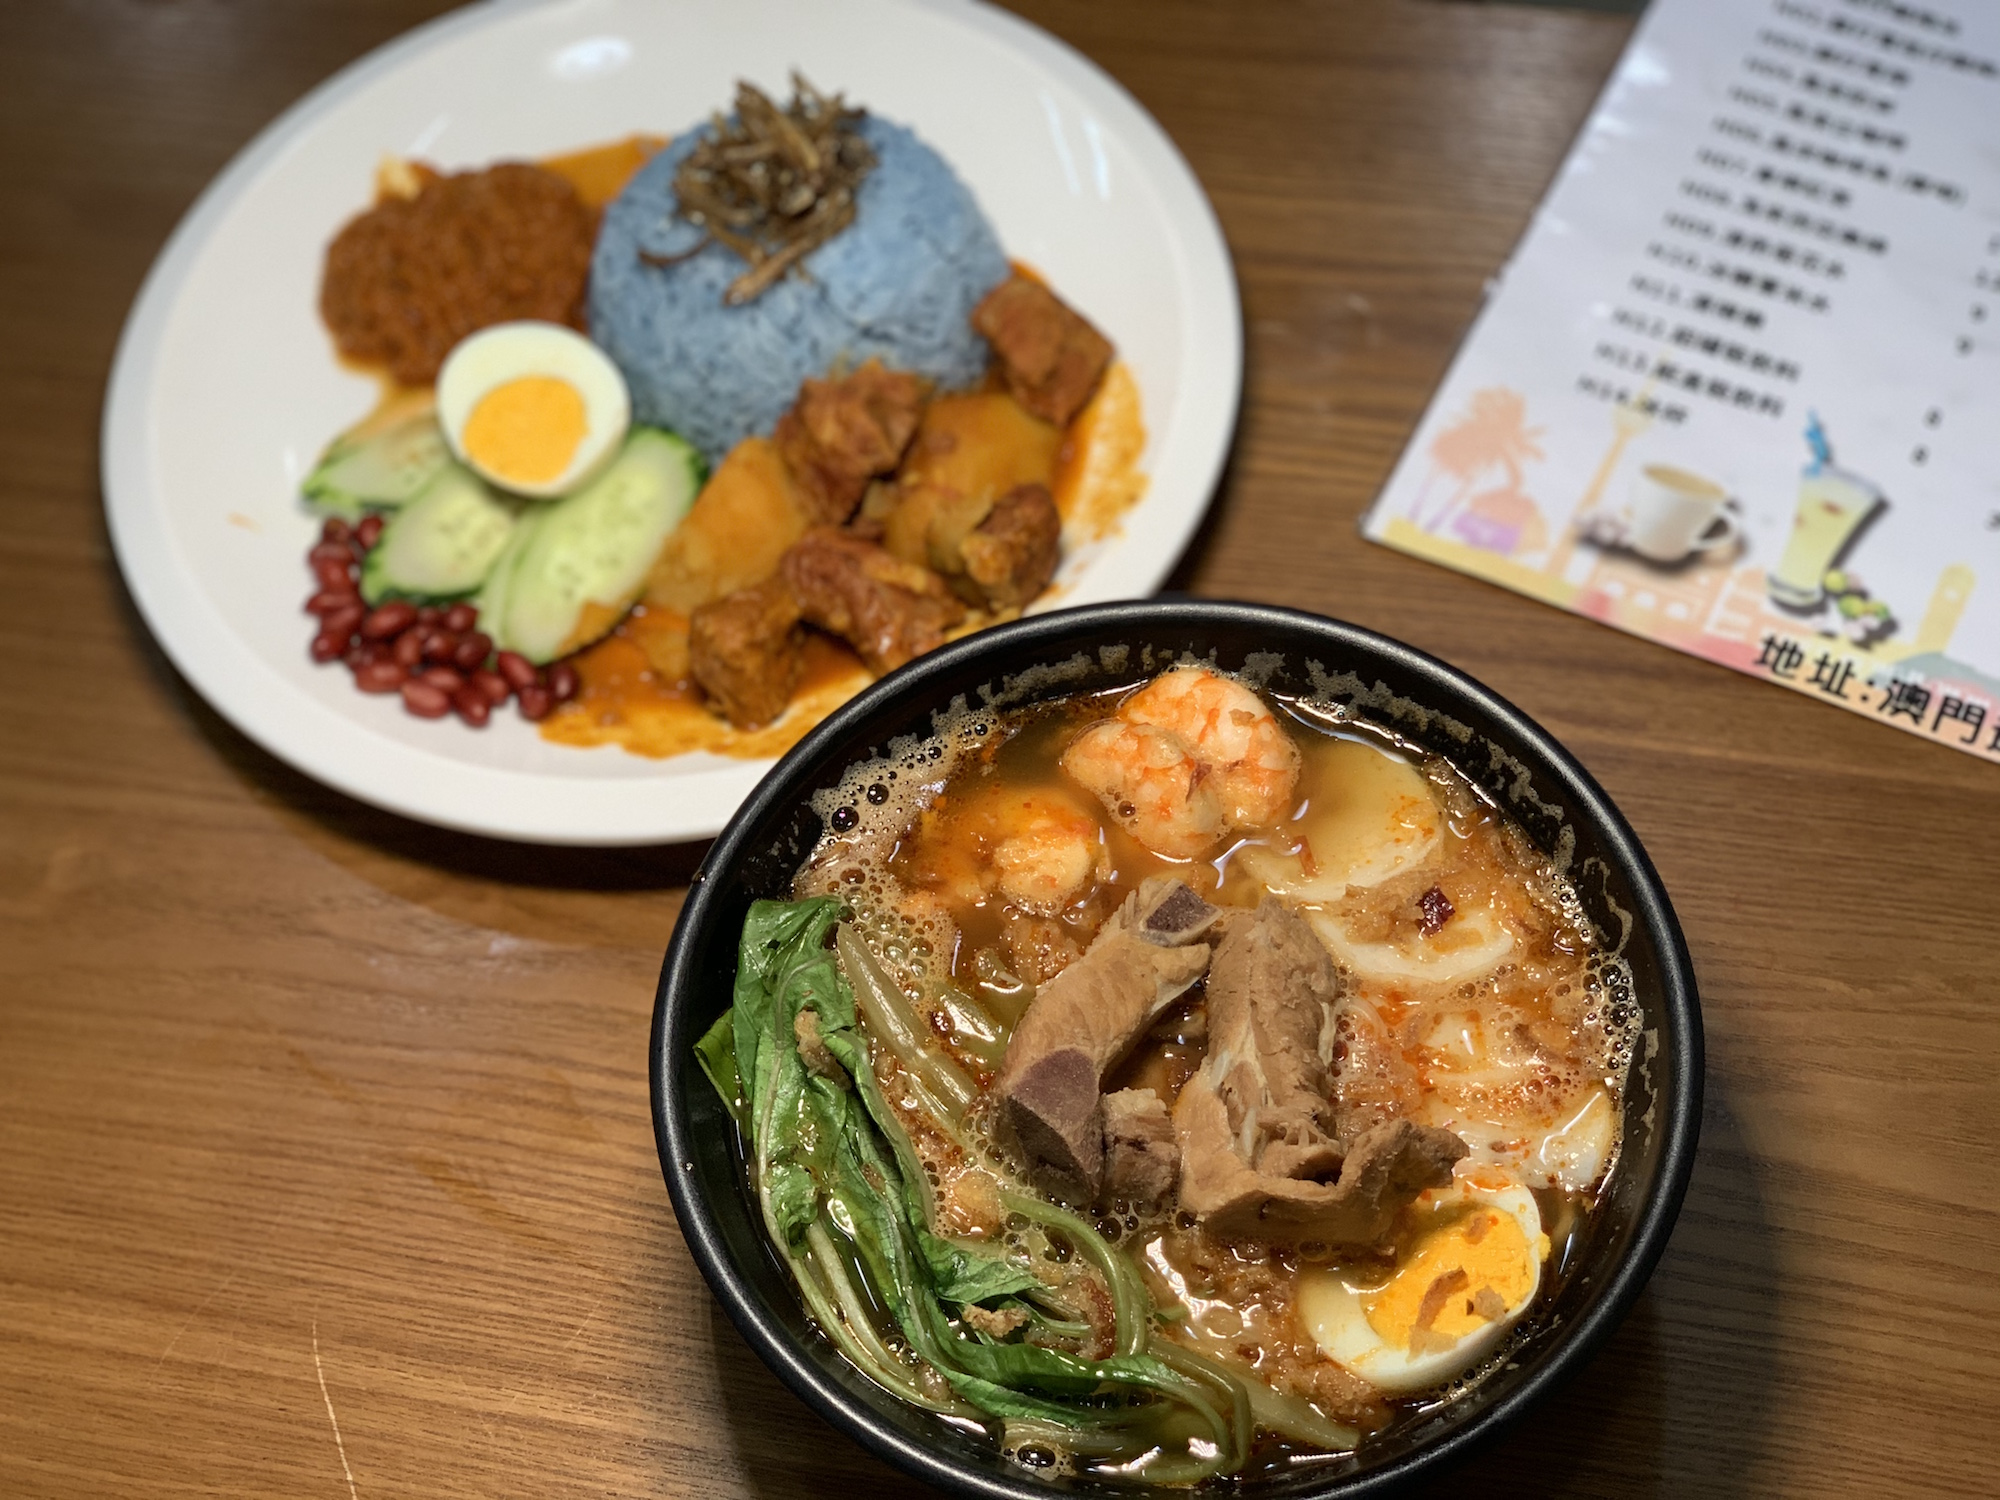 Ma Loi Tong Malaysian Restaurant Interior Shrimp Noodles Soup and Nasi Lemak in the Back Macau Lifestyle